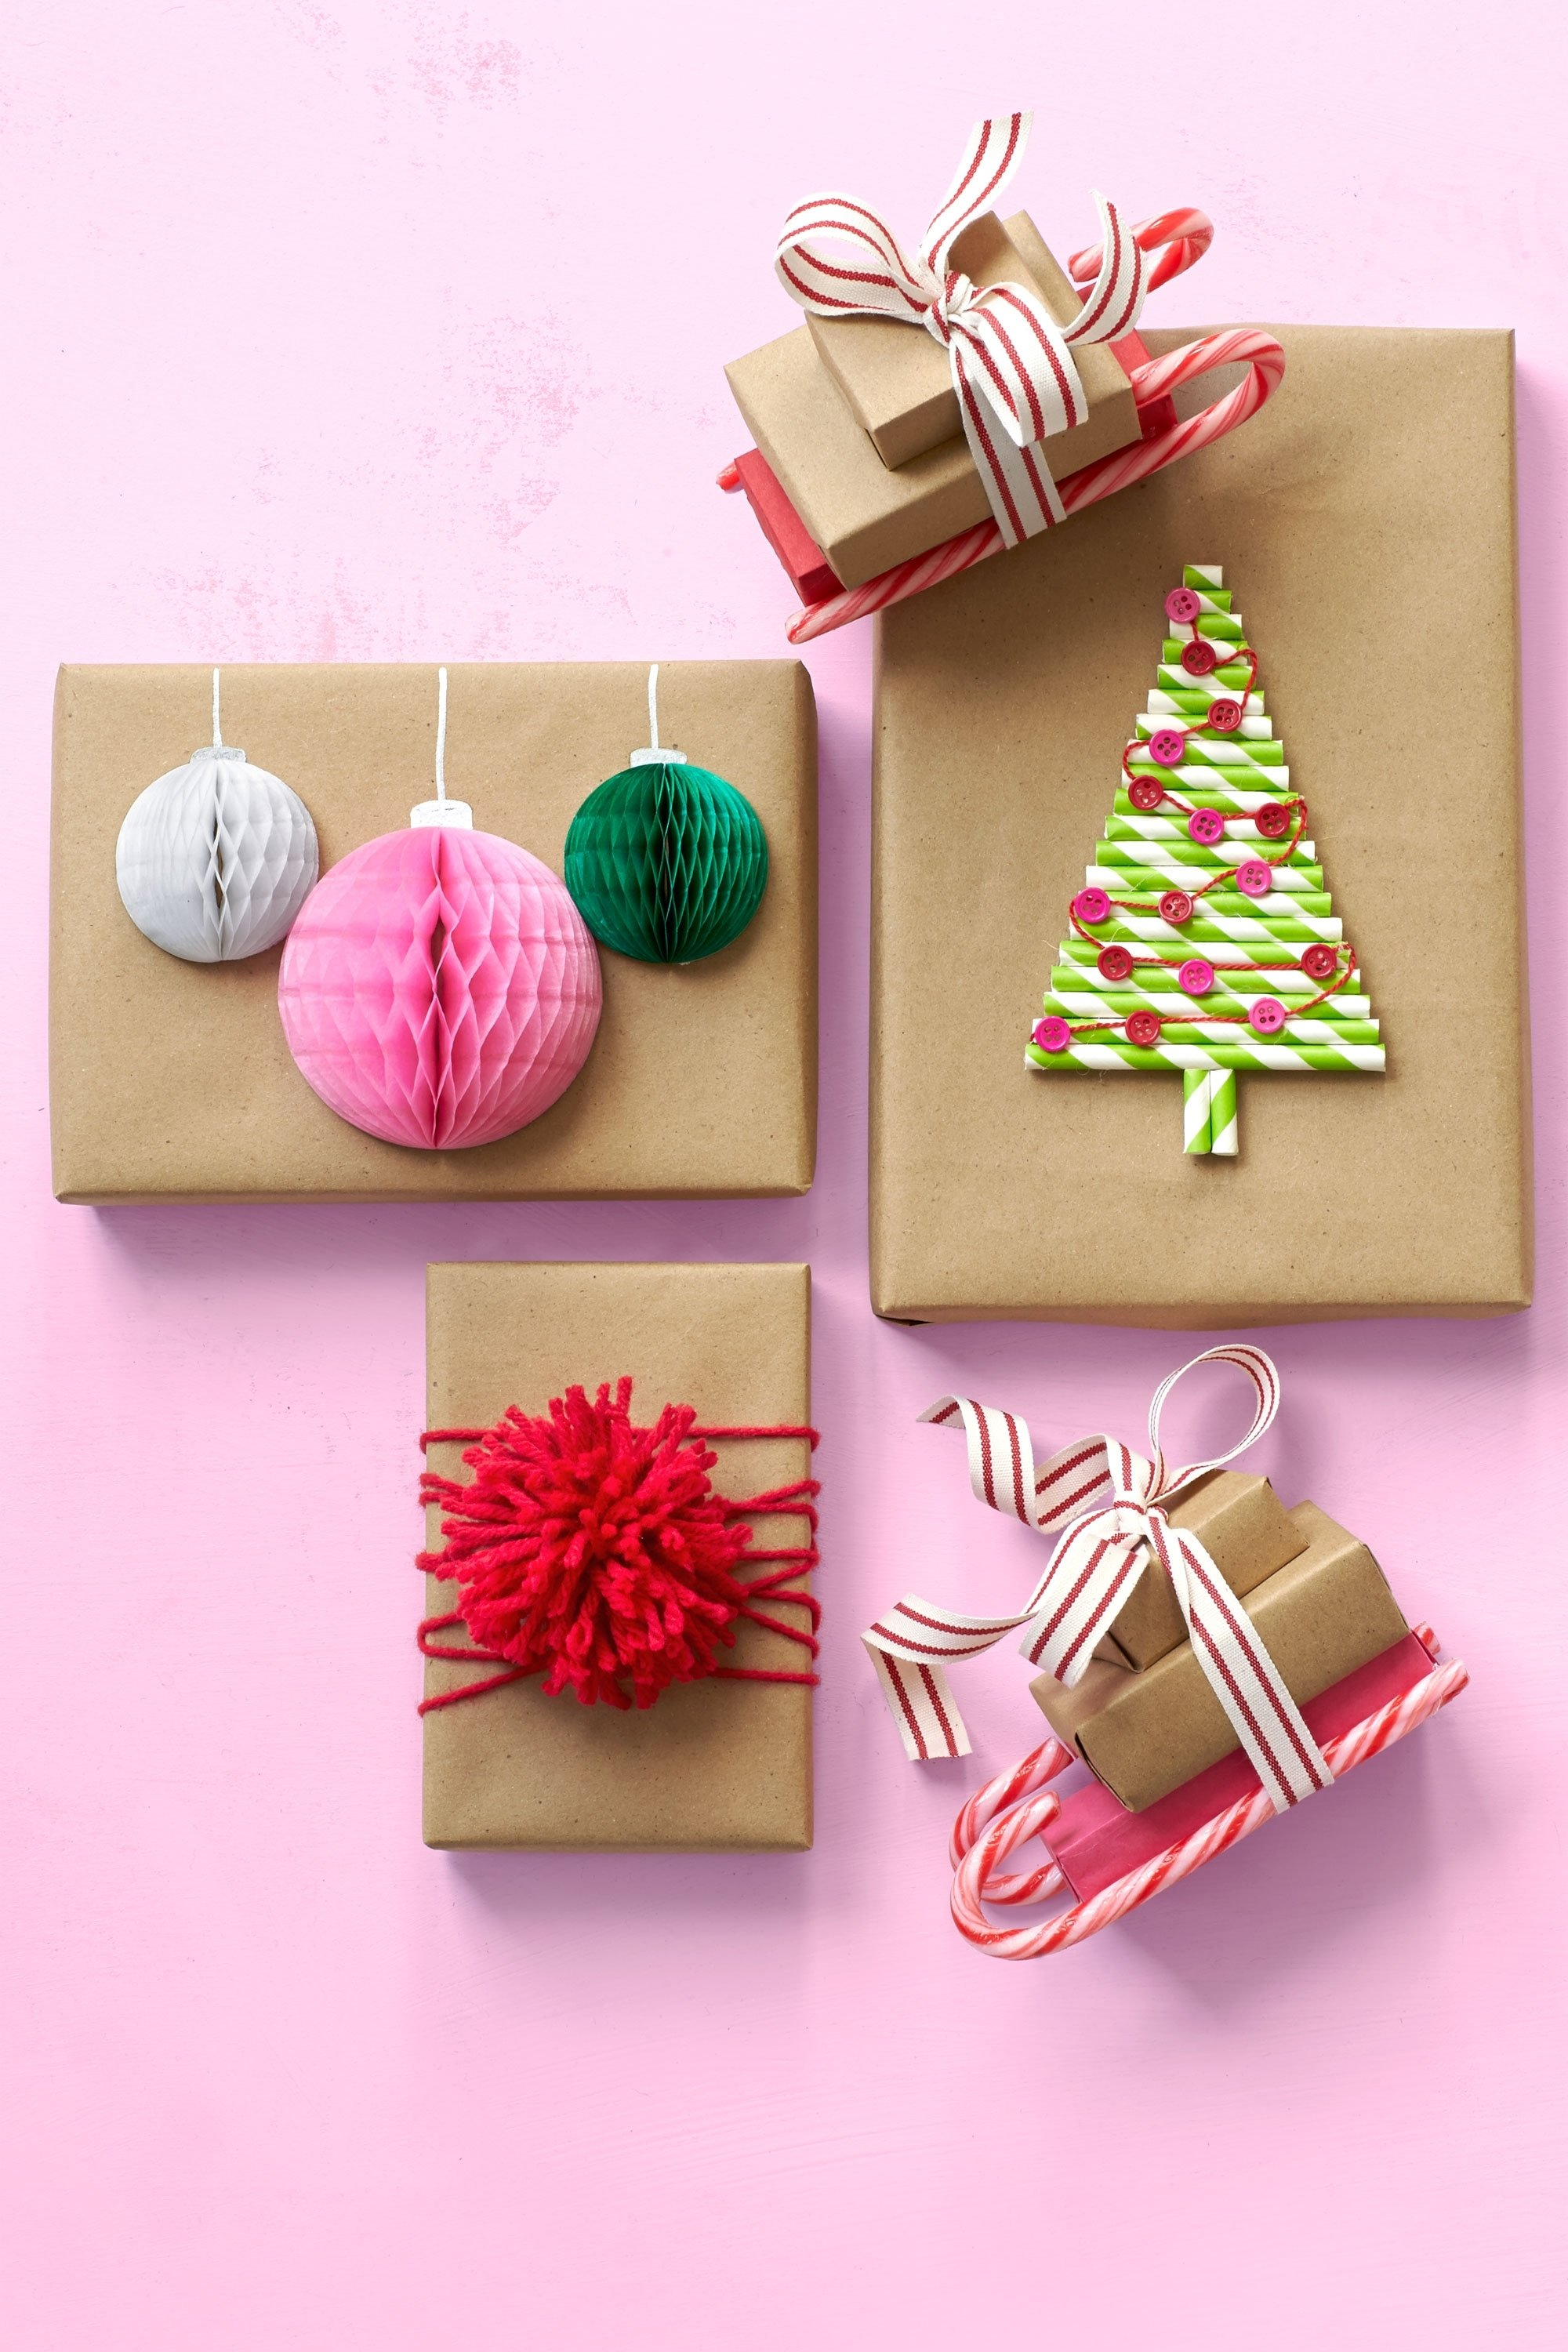 10 Beautiful Homemade Christmas Gift Ideas For Friends diy christmas gifts for coles thecolossus co 2020